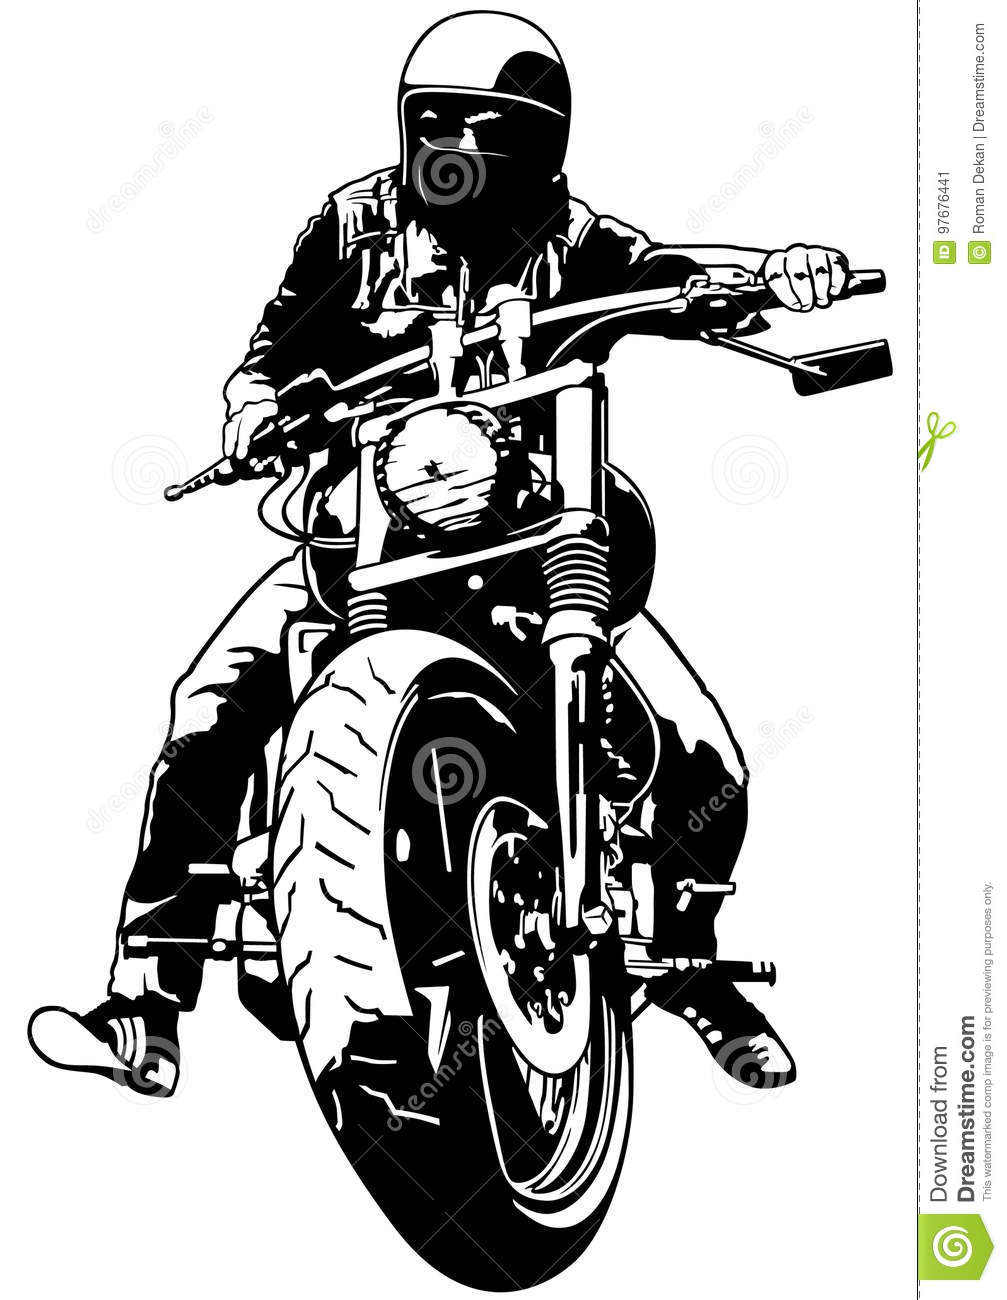 Harley davidson clipart motorcycle - Clipartix